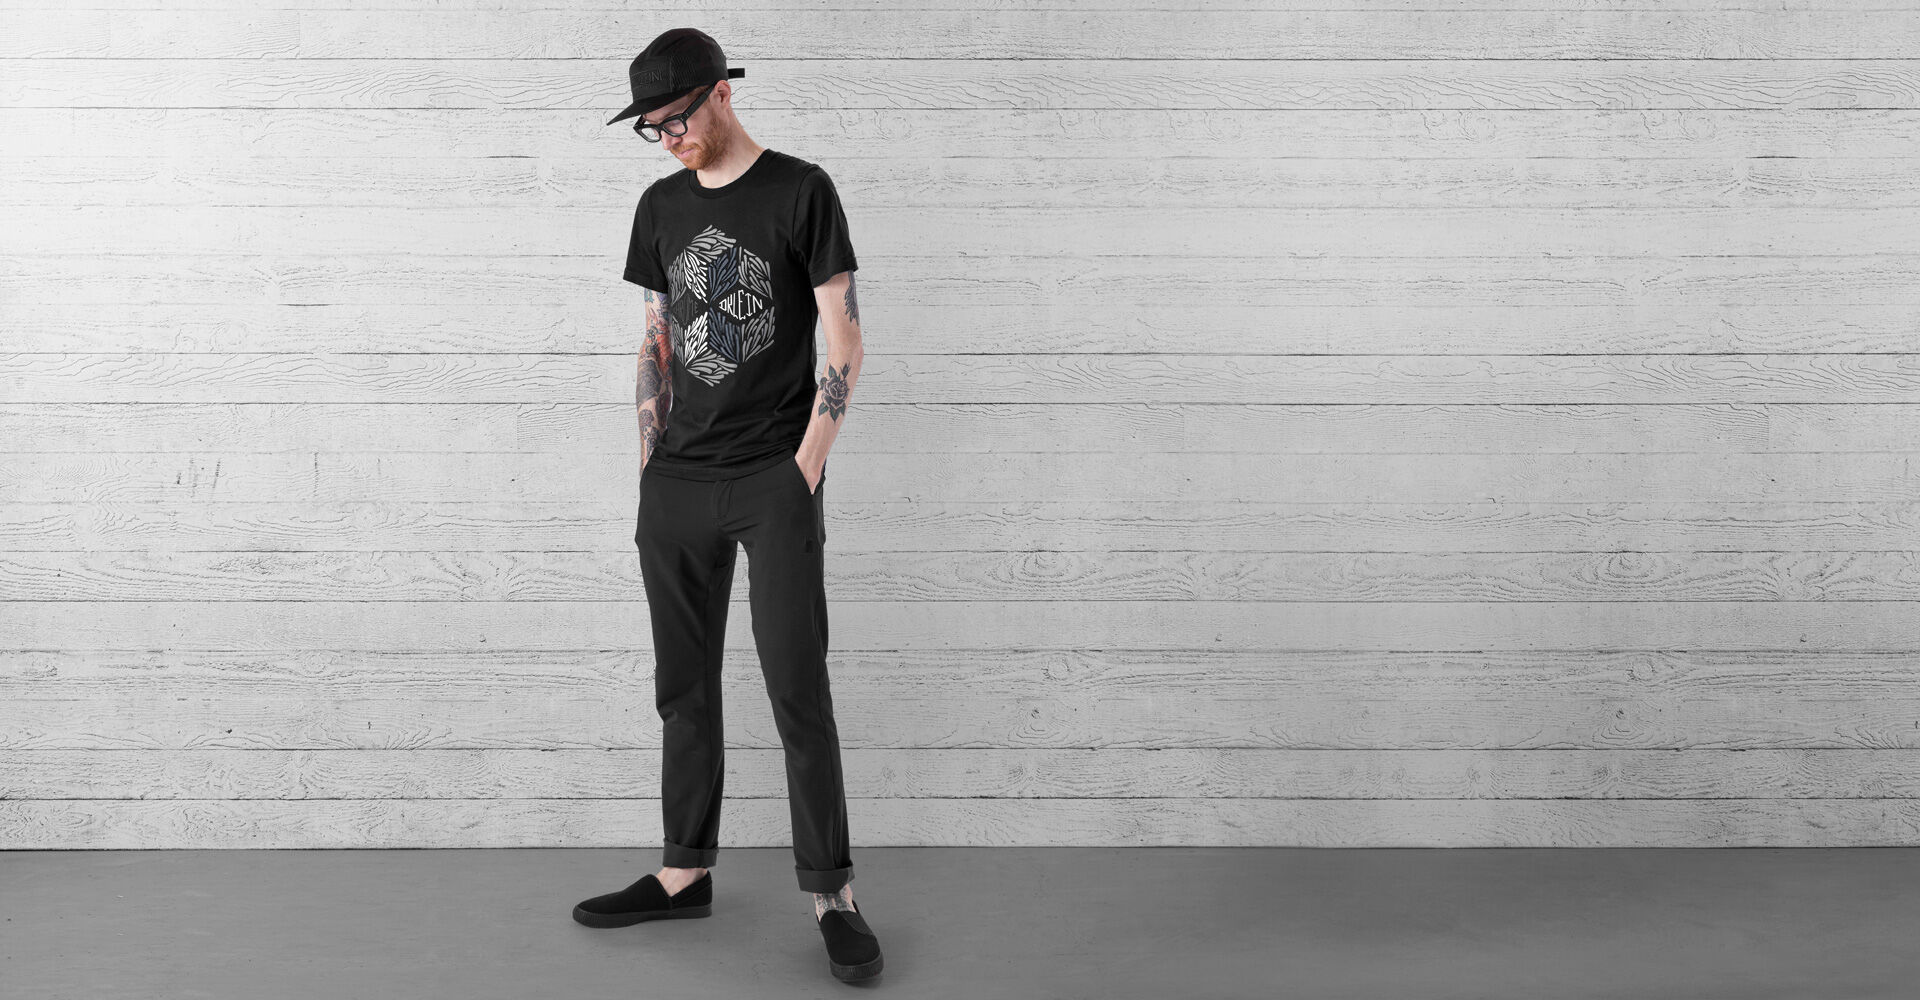 DKlein Short Sleeve Tee in Black - wide view.